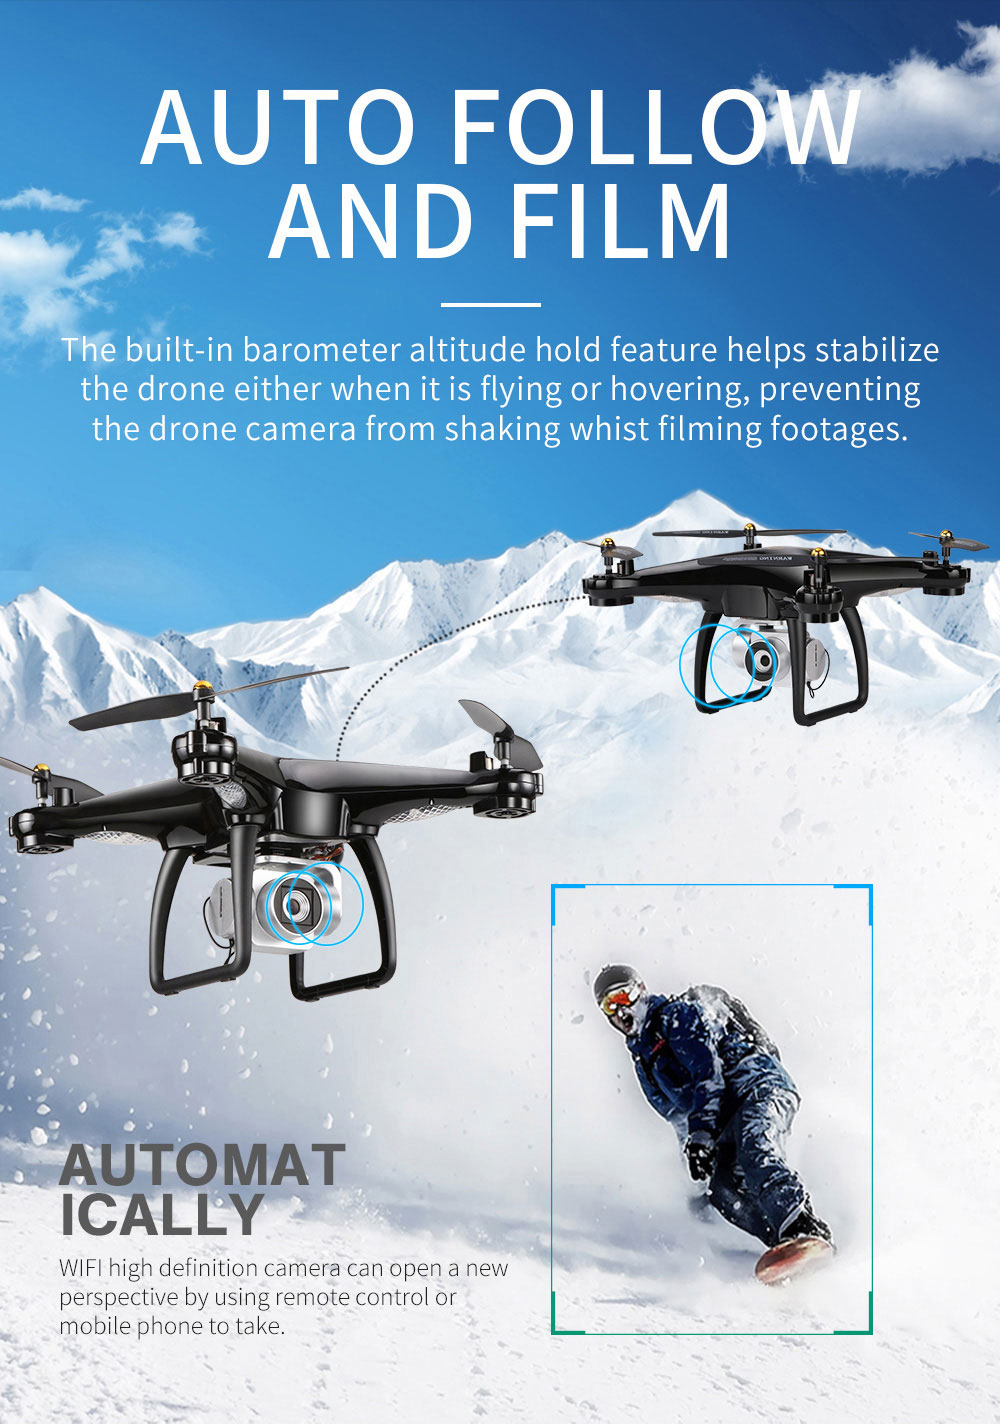 JJRC H68G GPS Drone With Camera 1080P HD 5G Wifi FPV Quadrocopter RC Helicopter Professional Dron Compass Auto Follow Quadcopter 10